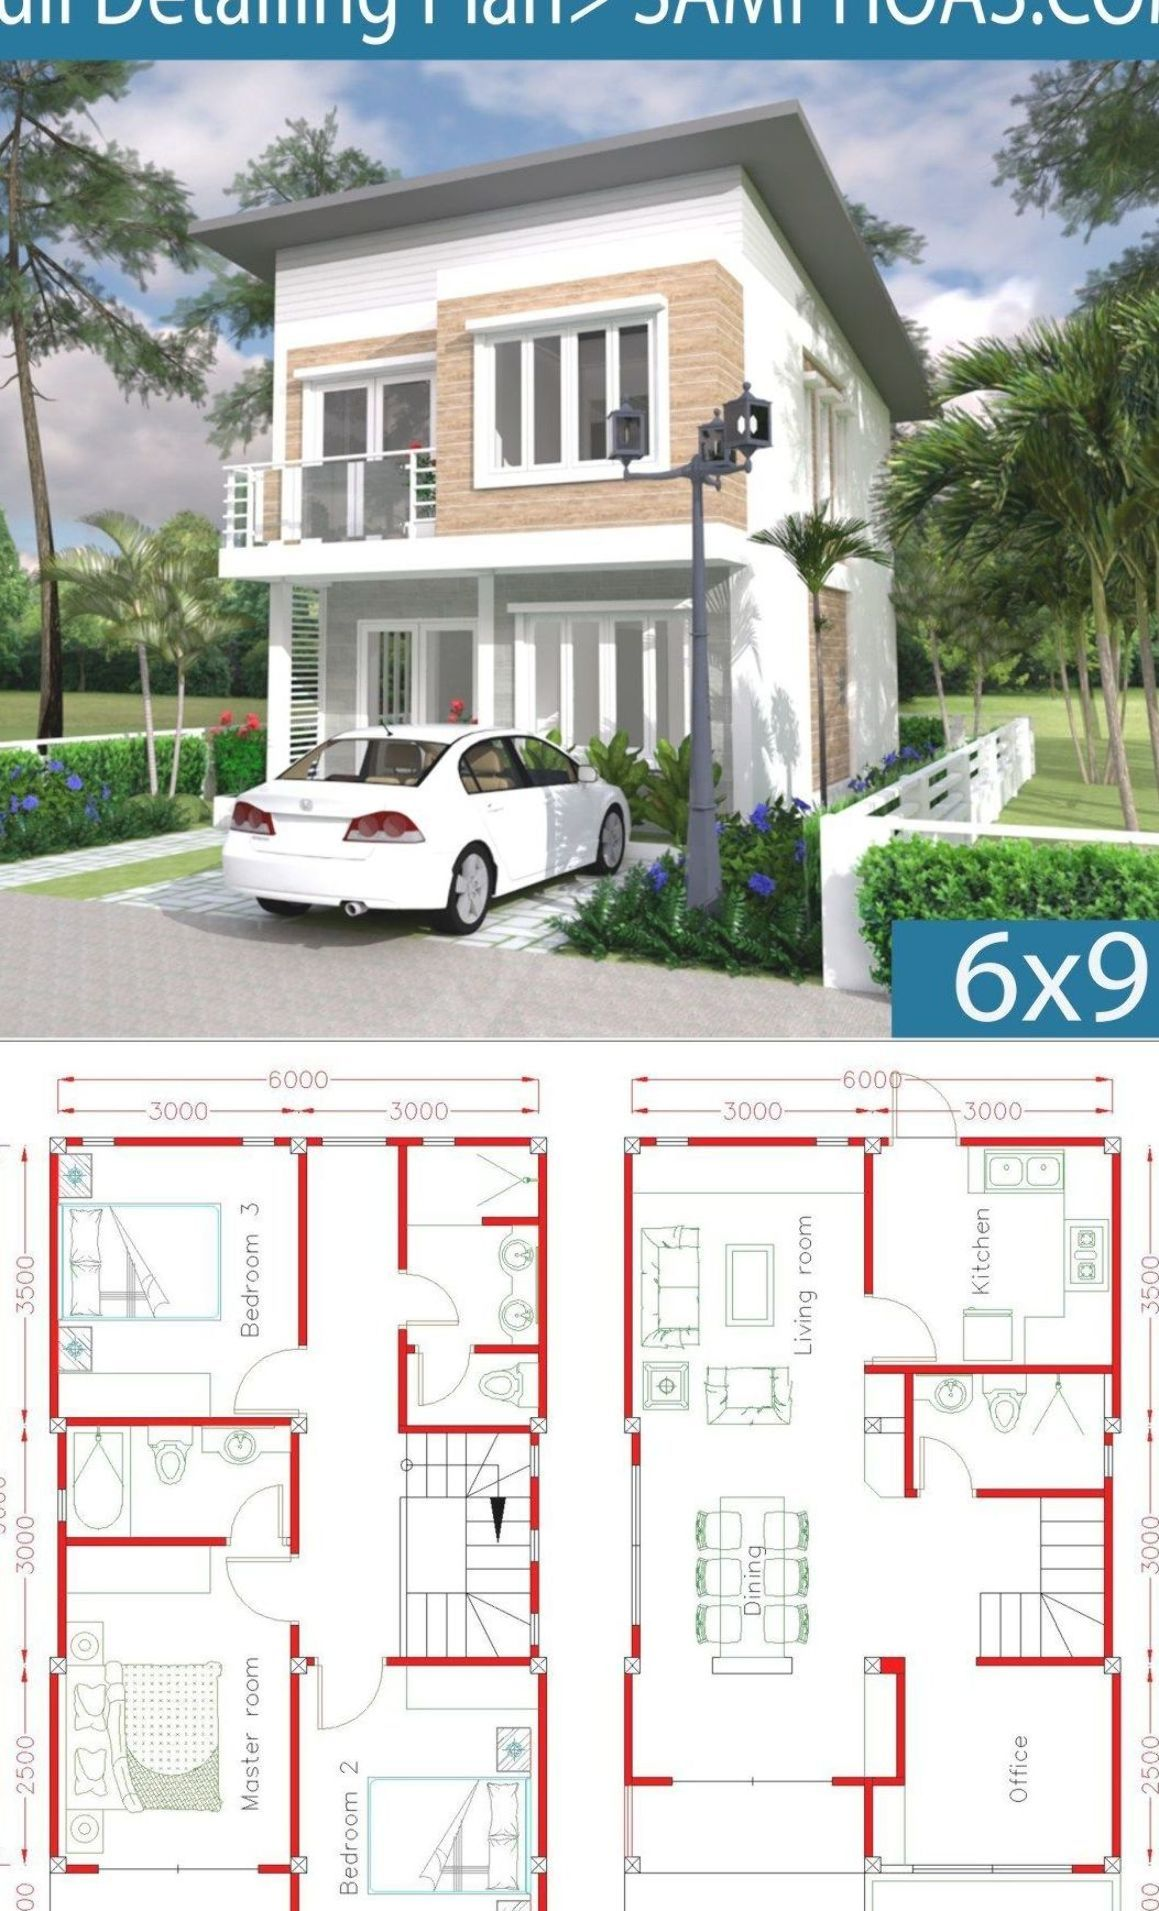 Simple Home Design Plan 6x9m with 3 Bedrooms - SamPhoas Plansearch